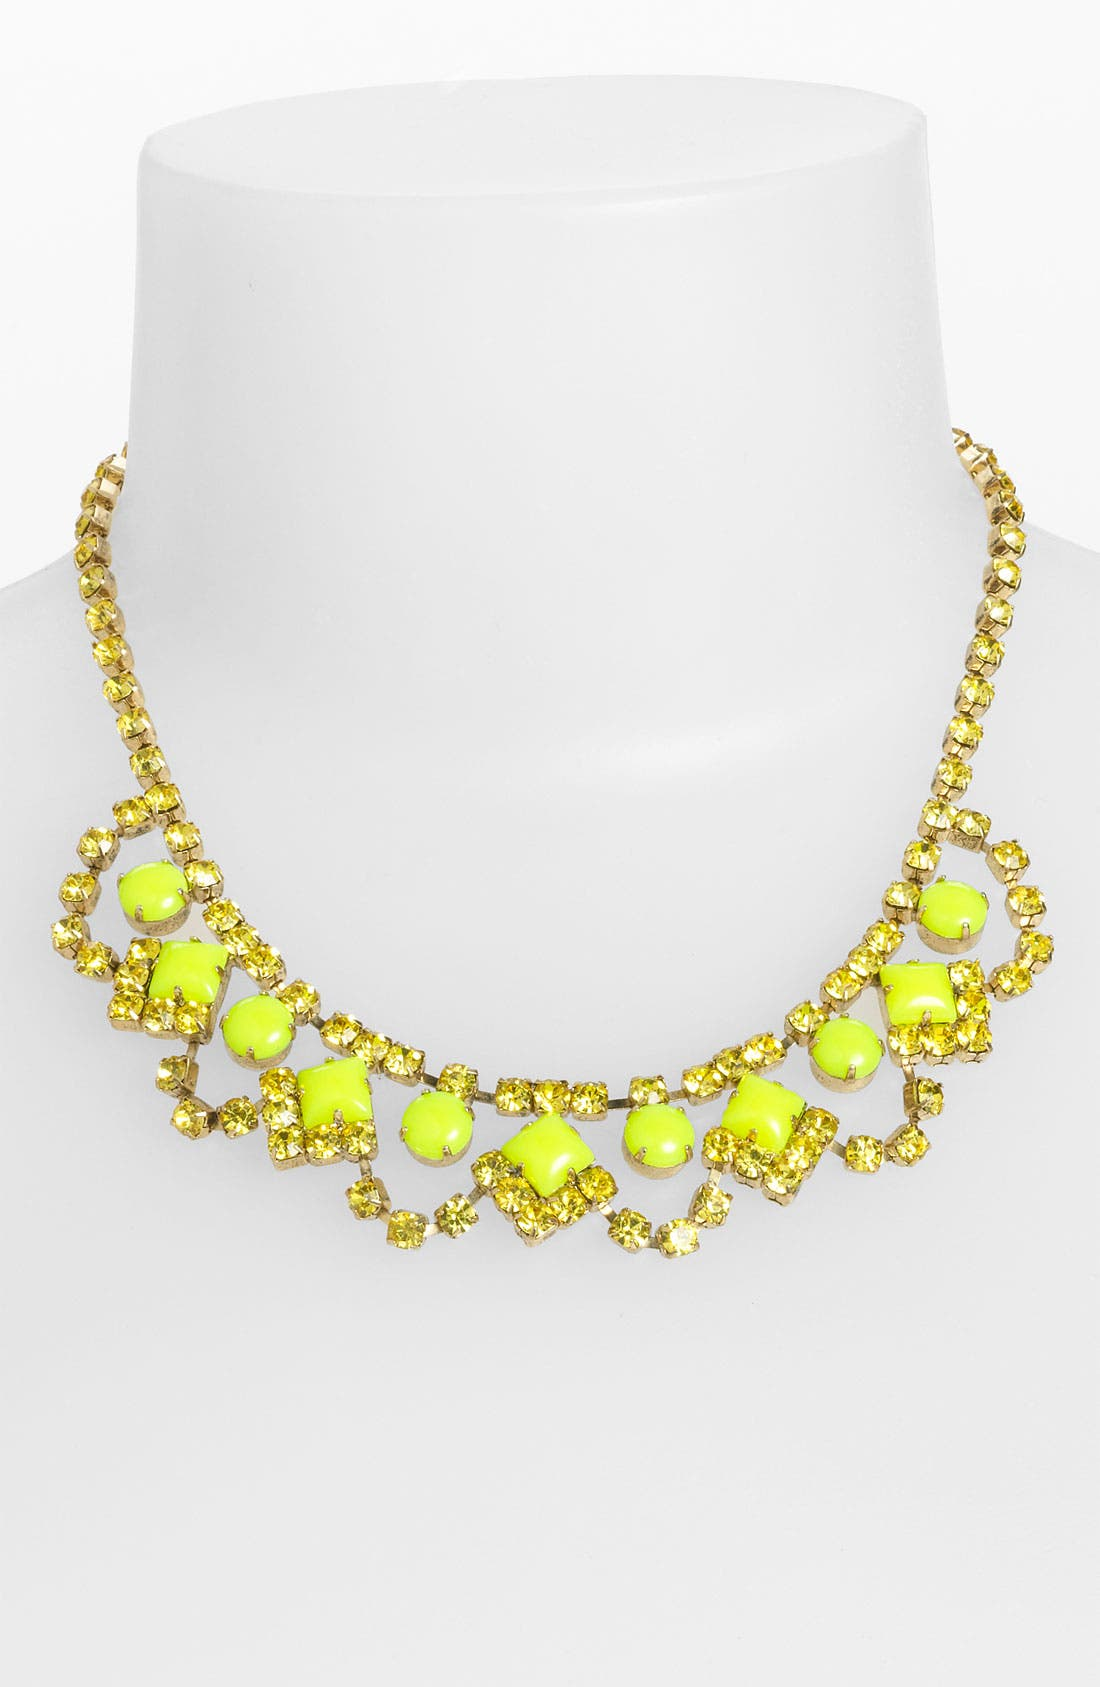 Alternate Image 1 Selected - Sweet Scandal 'Lulu' Crystal Necklace